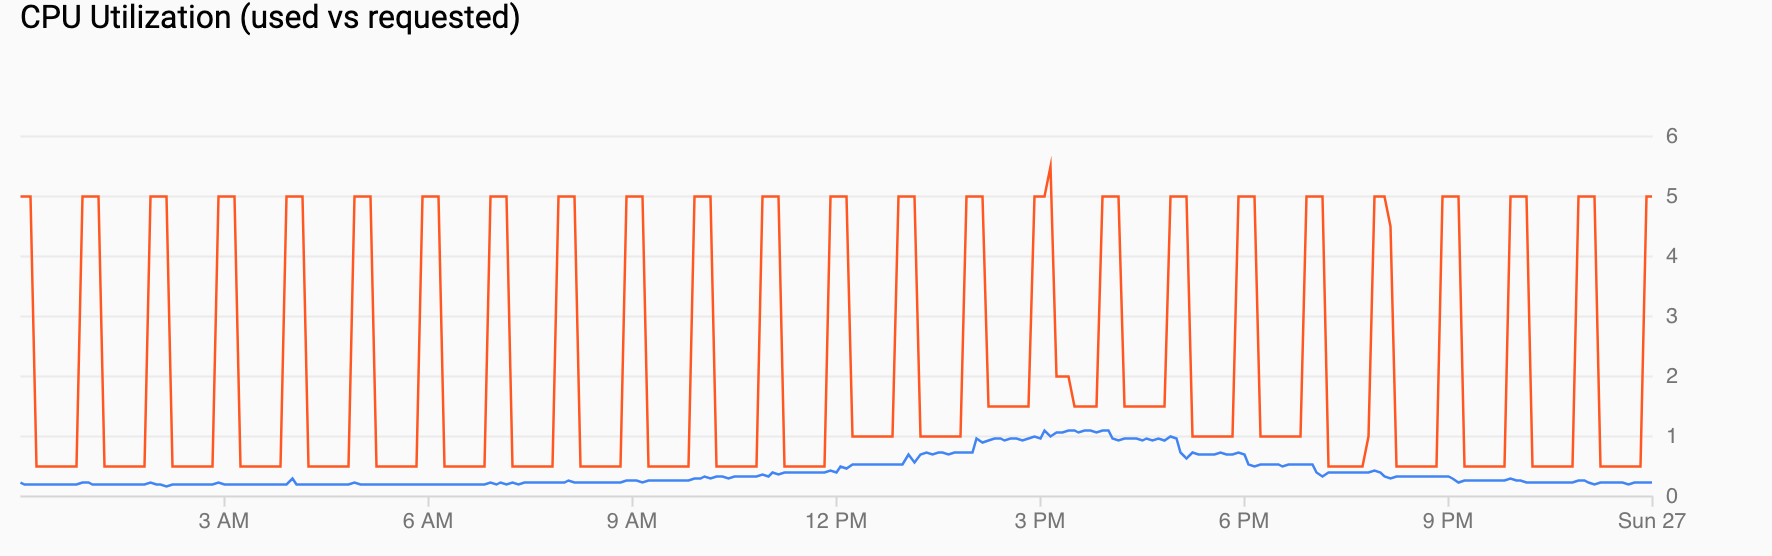 Graph of CPU utilization, showing demand growing during the day till 4:00 PM, then falling off..